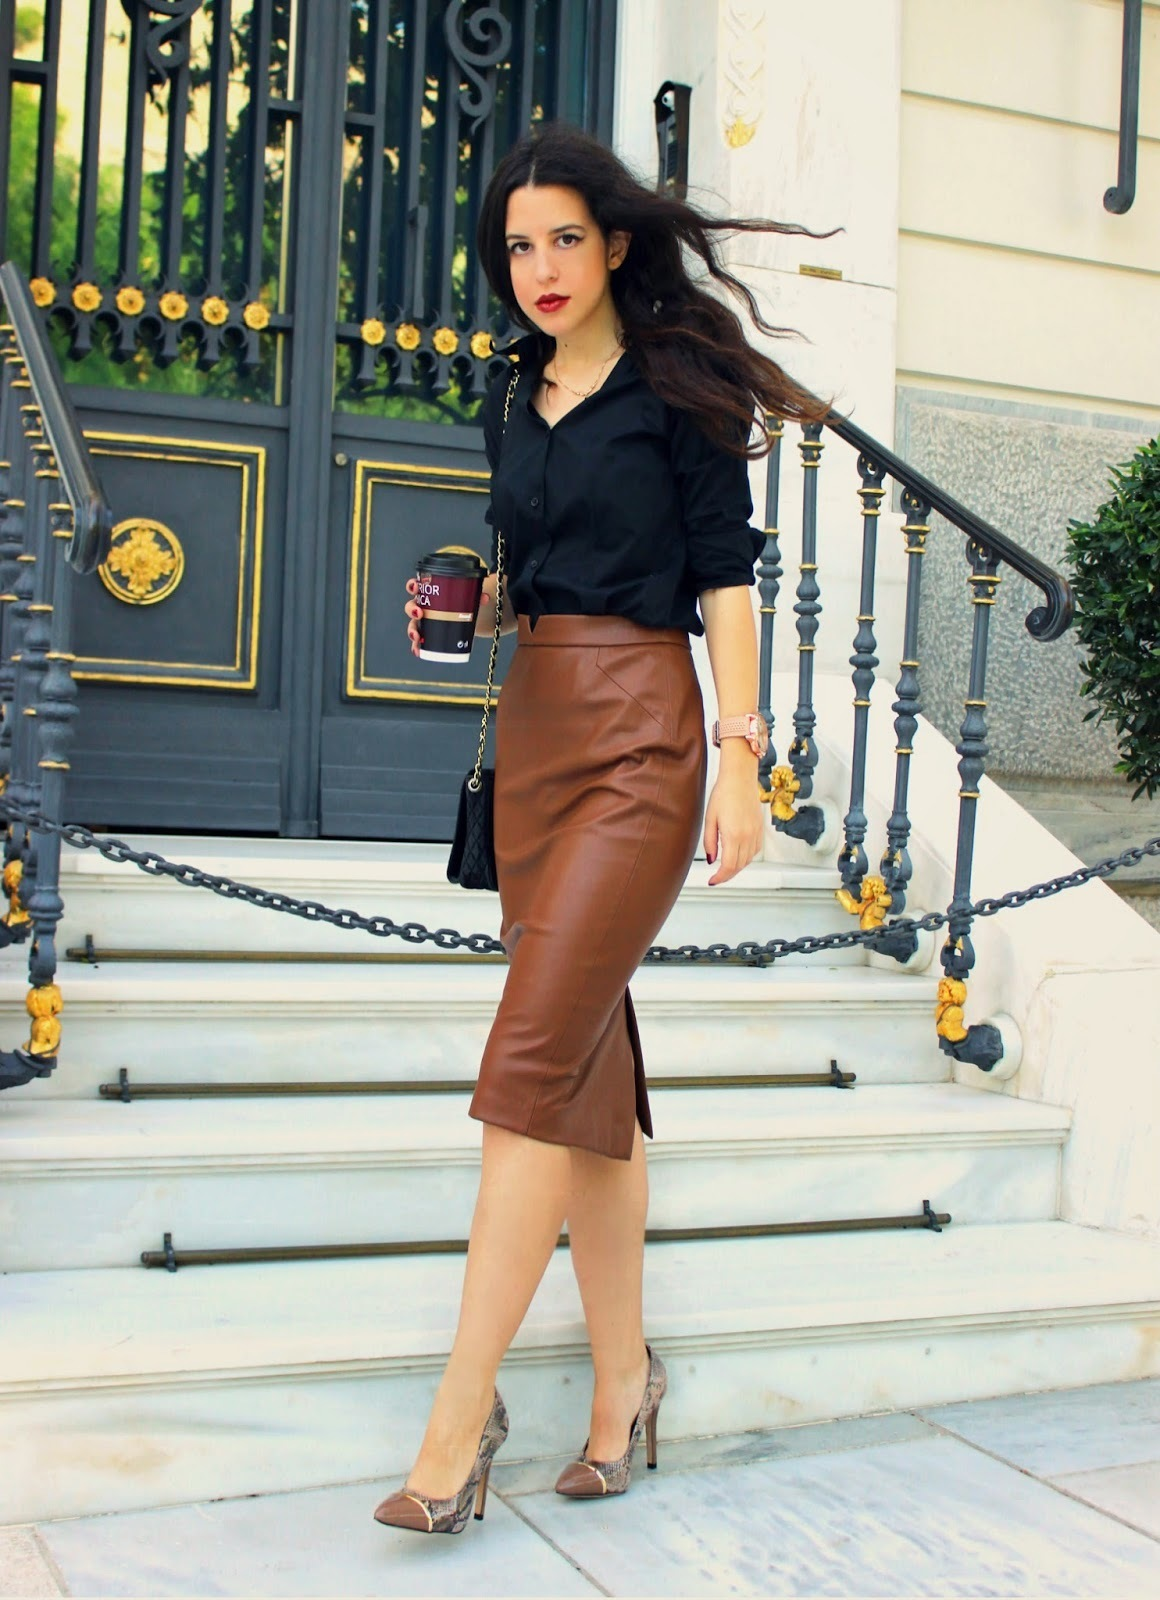 Brown Leather Skirt Outfit - Skirts